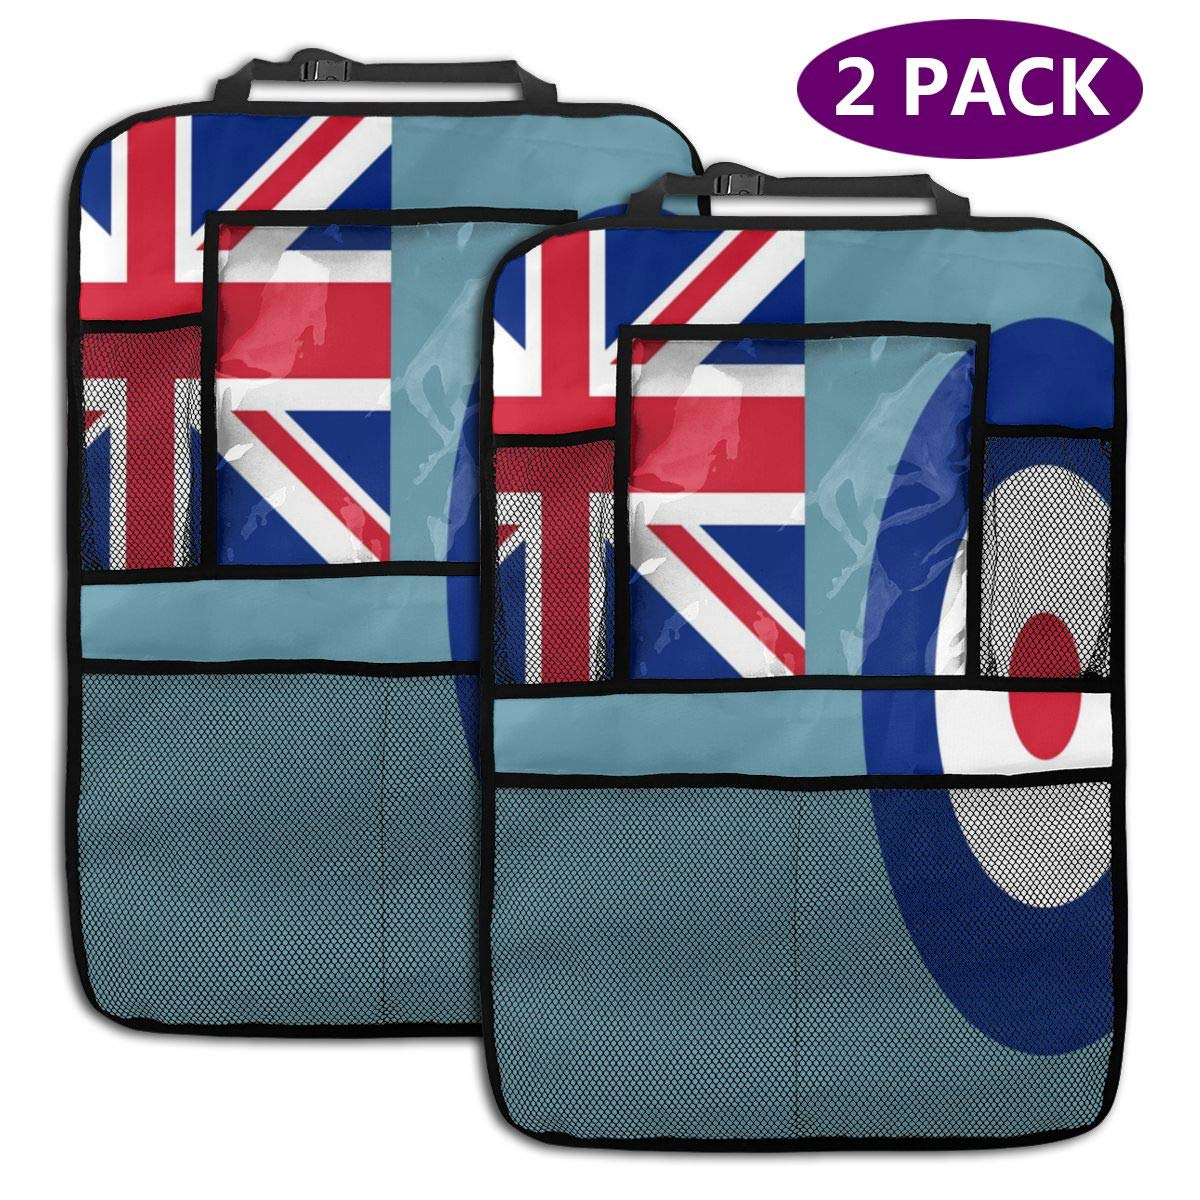 QF6FEICHAN Air Force Ensigh of The United Kingdom Car Seat Back Protectors with Storage Pockets Kick Mats Accessories for Kids and Toddlers by QF6FEICHAN